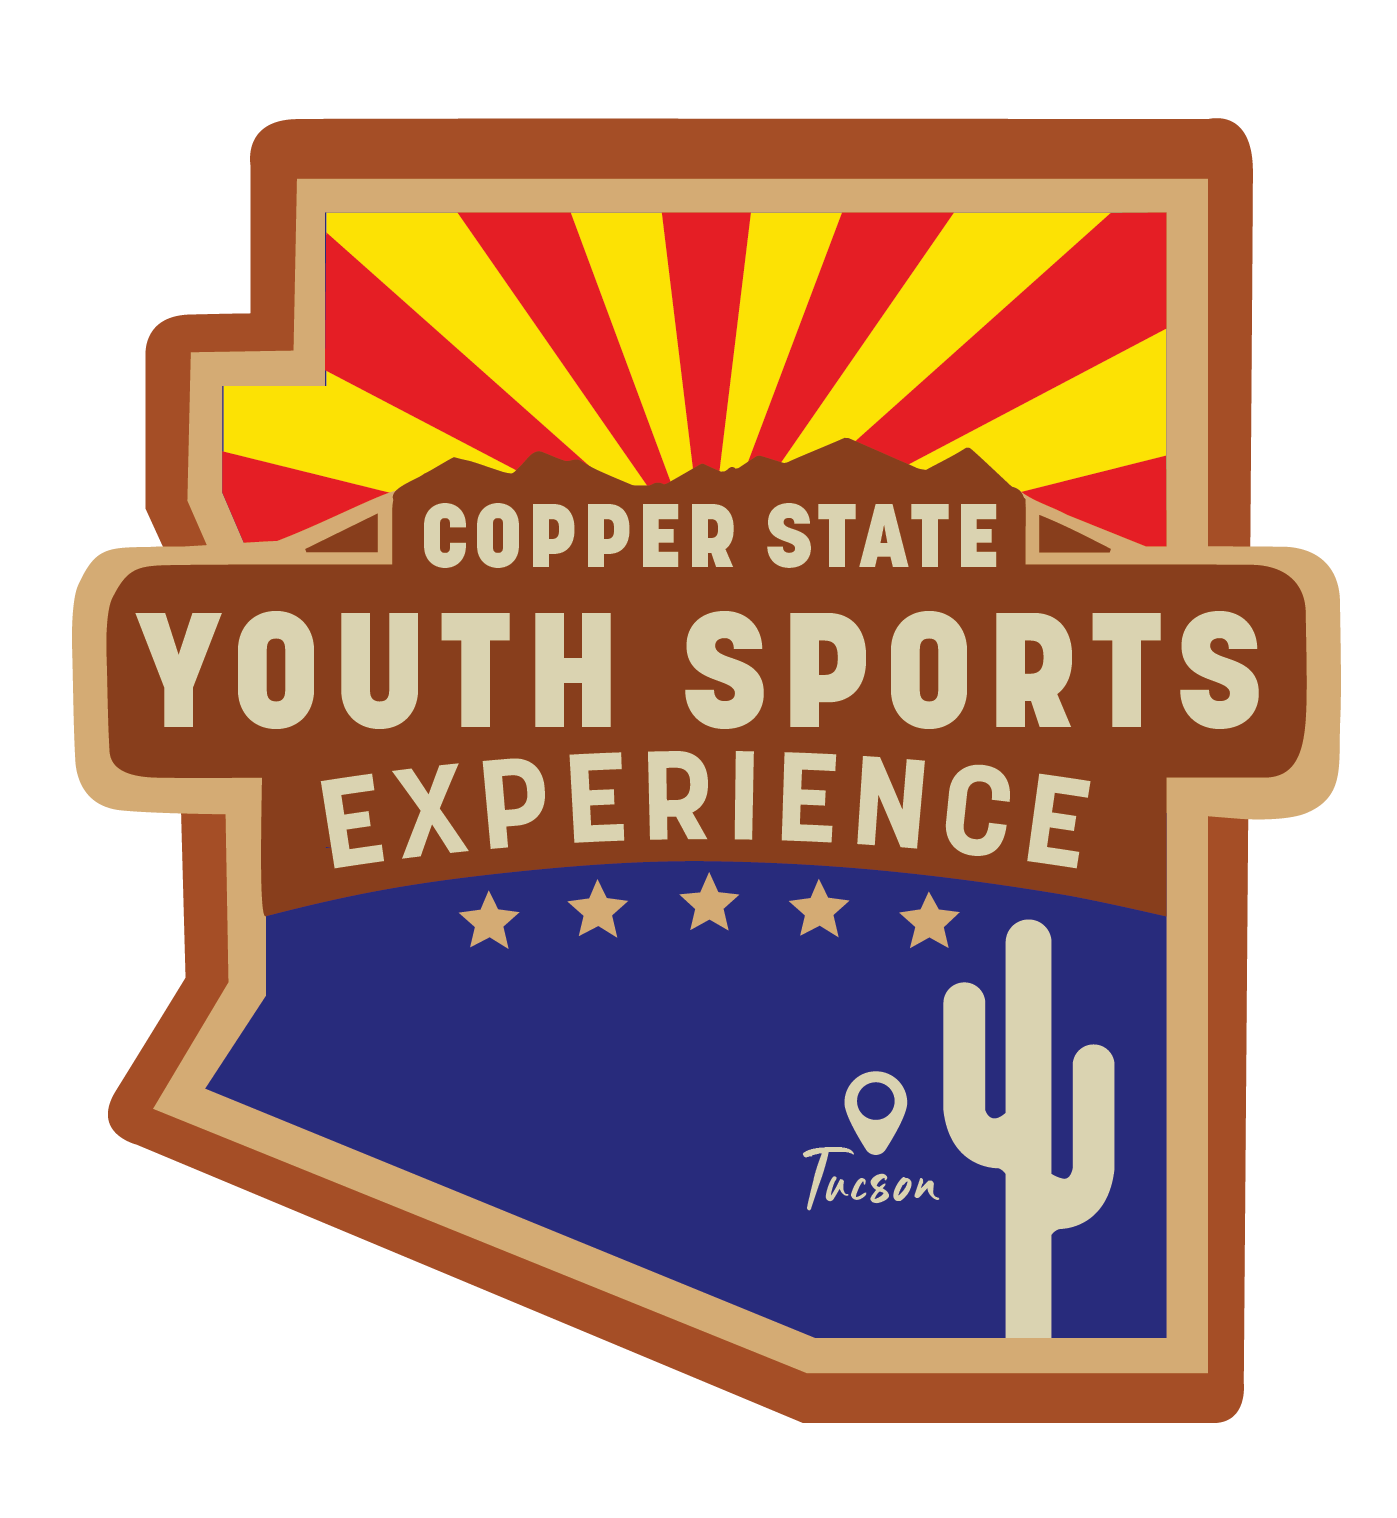 Copper State Youth Sports Experience